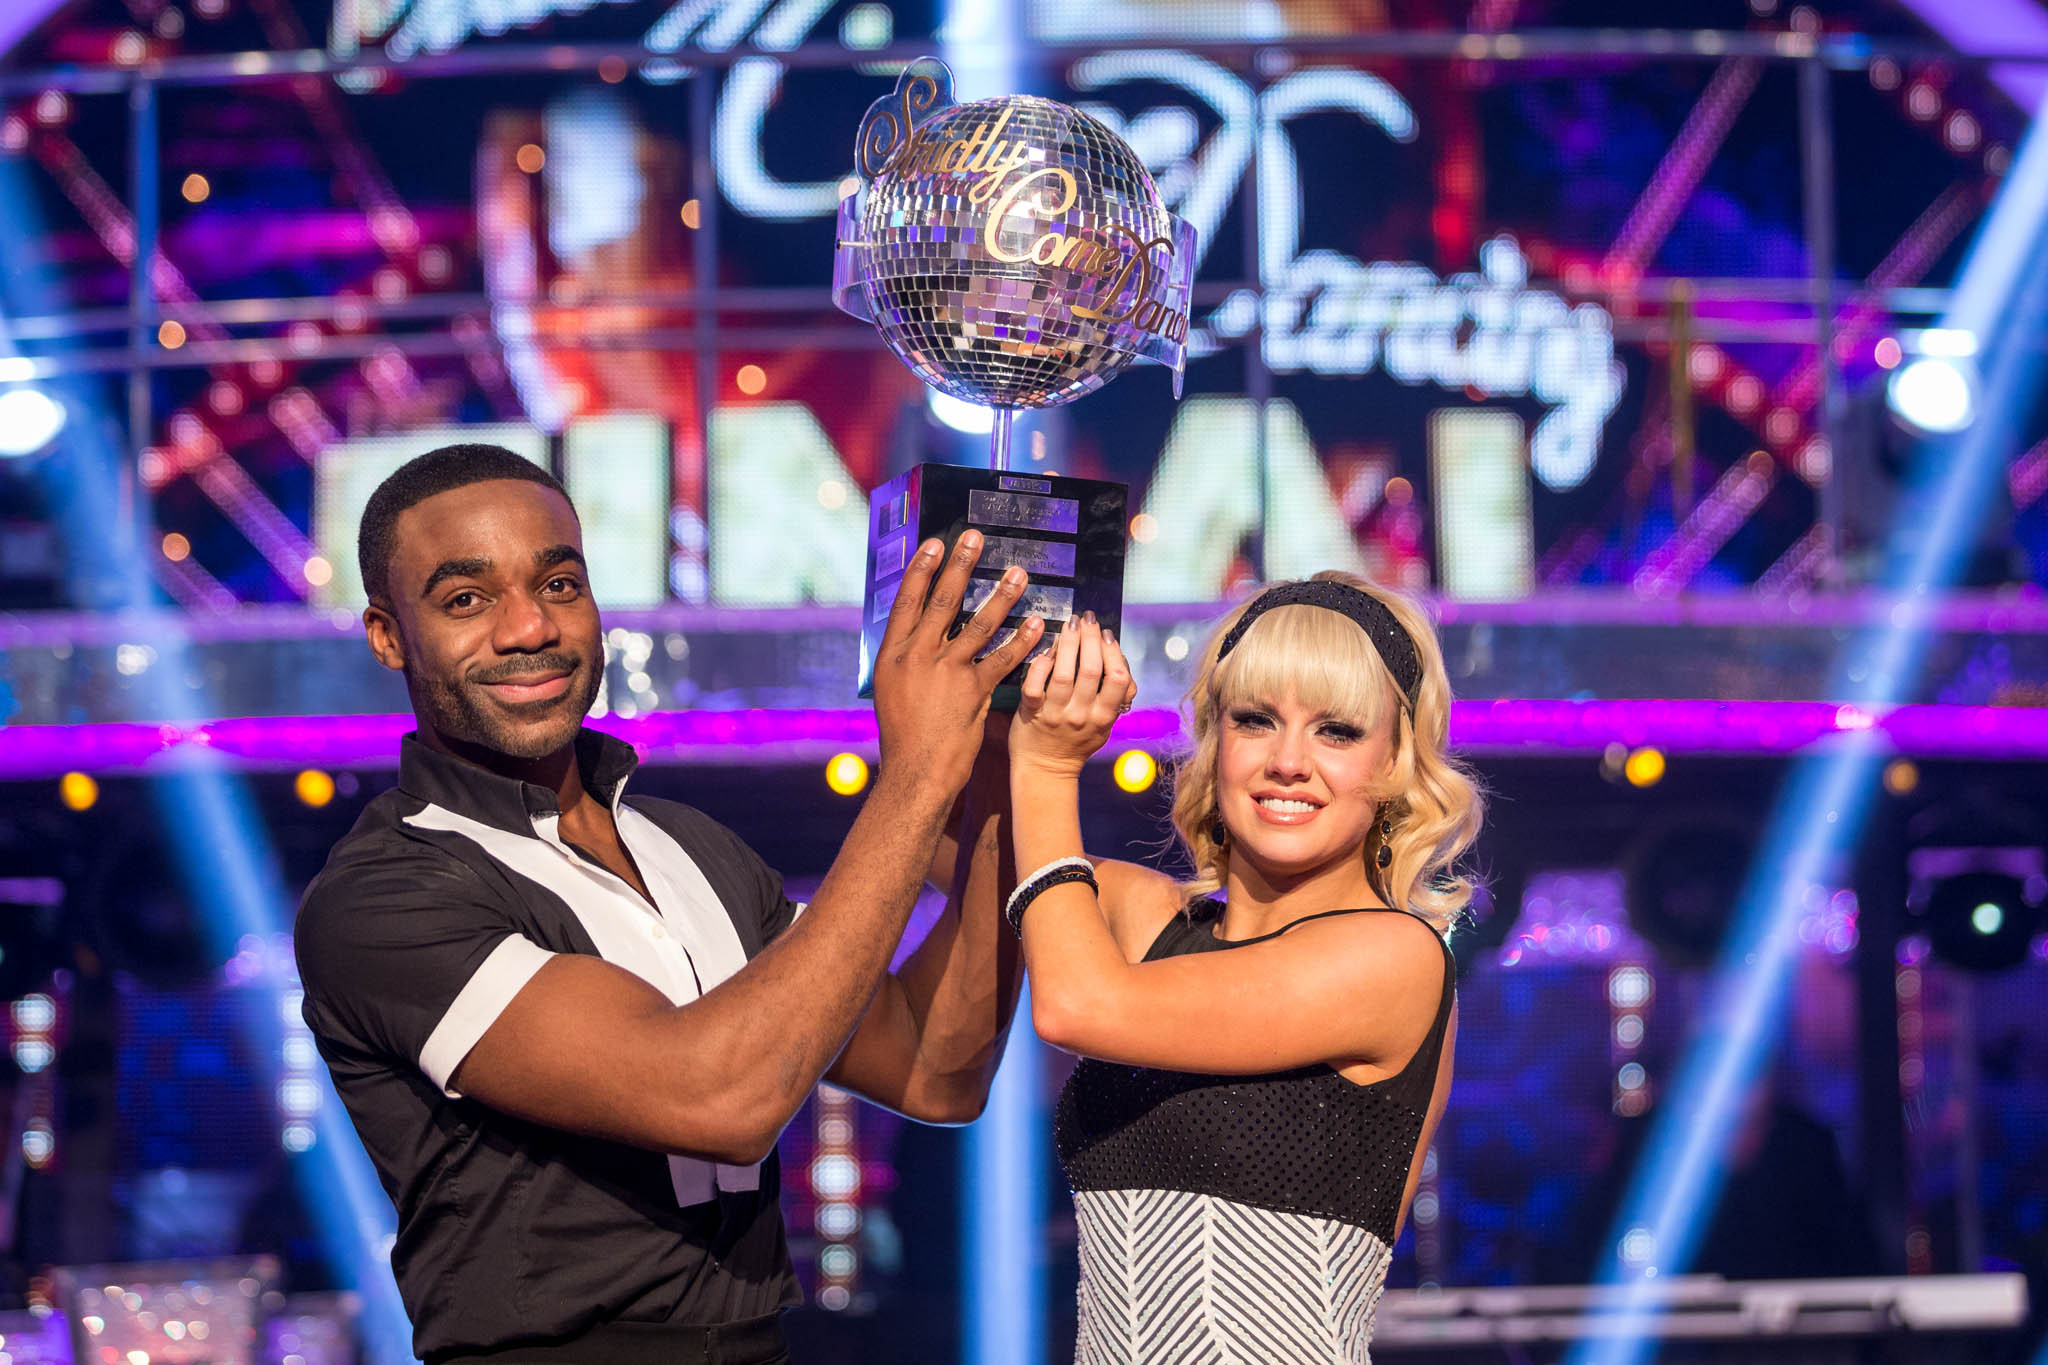 Joanne Clifton and Ore Oduba with the Strictly glitterball trophy (Guy Levy/BBC)